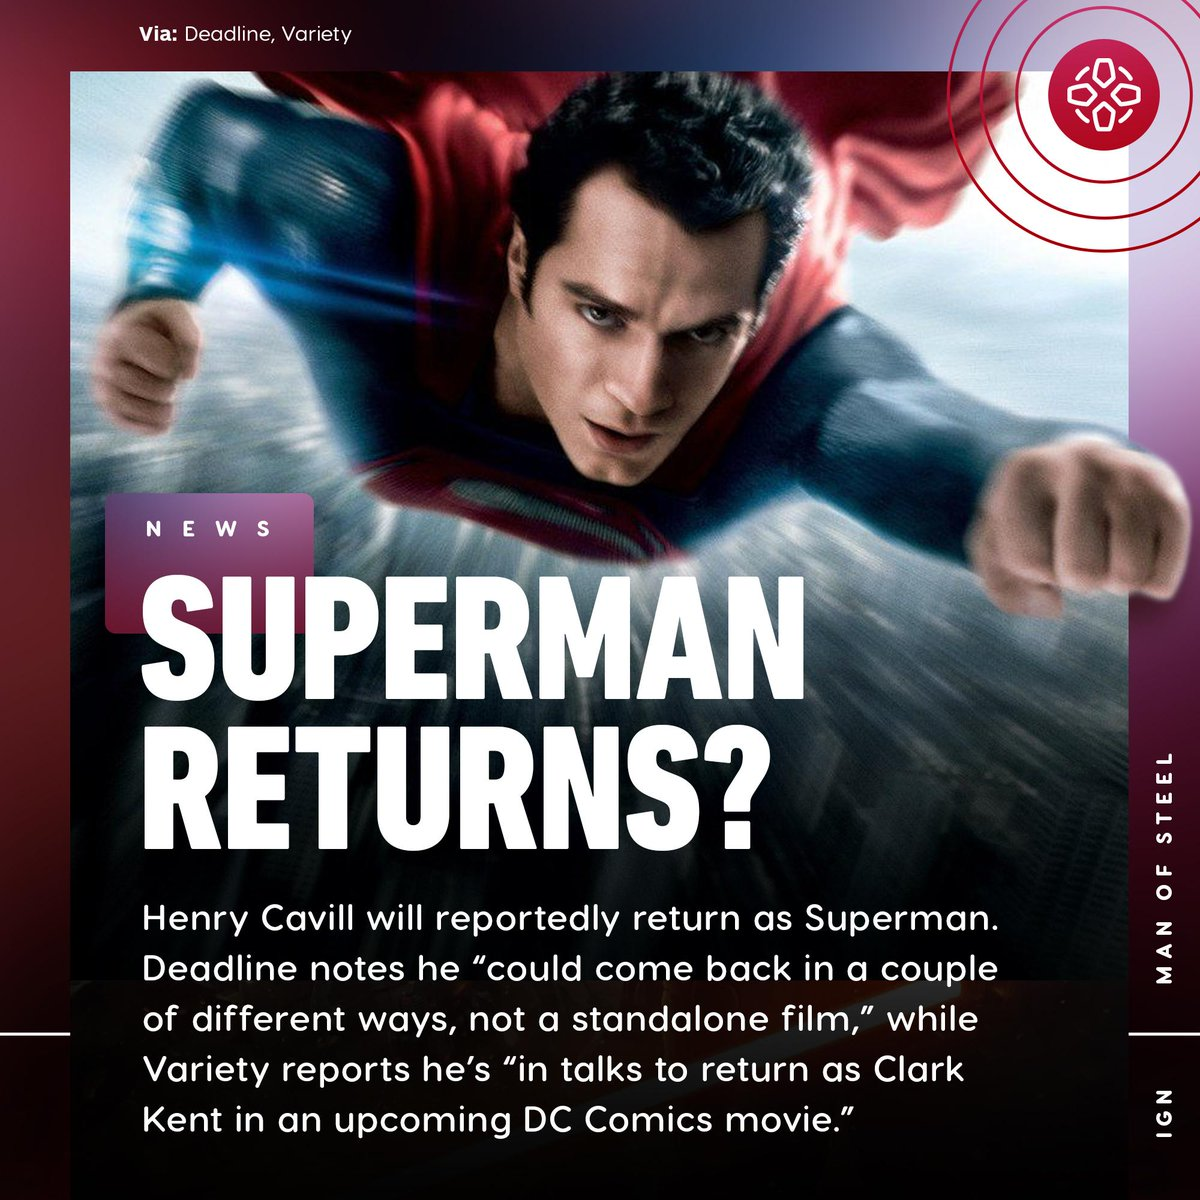 Henry Cavill isn't expected to reprise his role as Superman in Wonder Woman 1984, The Suicide Squad, or The Batman, but it's possible he'll appear in Shazam 2, Black Adam, or Aquaman 2.  https:// bit.ly/2yF5cok    <br>http://pic.twitter.com/O26S3K7zkH